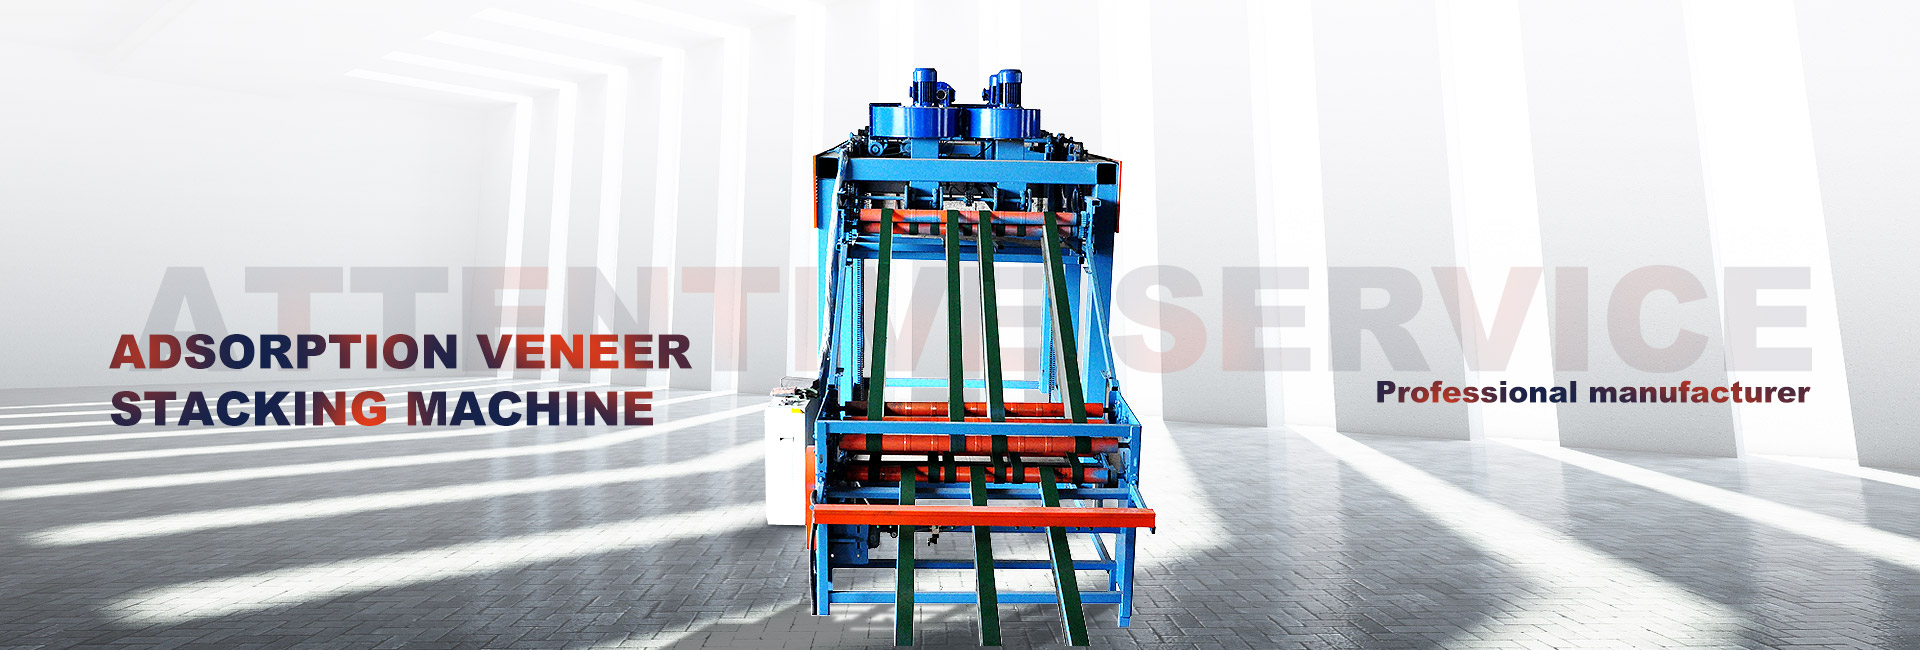 Adsorption Veneer Stacking Machine